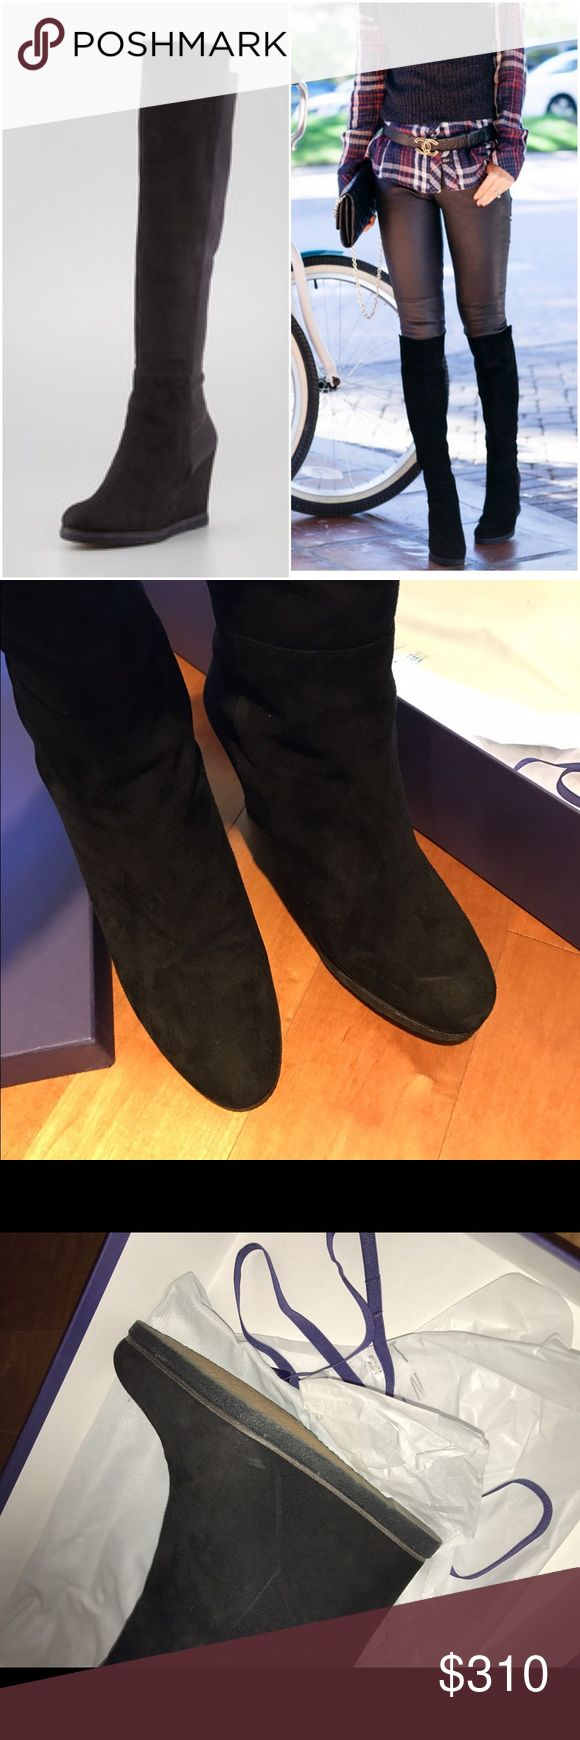 Stuart weitzman demiswoon black suede boots 9 With original box and dustbags. Worn twice. Black tall suede, has elasttic back. Sz 9 Stuart Weitzman Shoes Over the Knee Boots